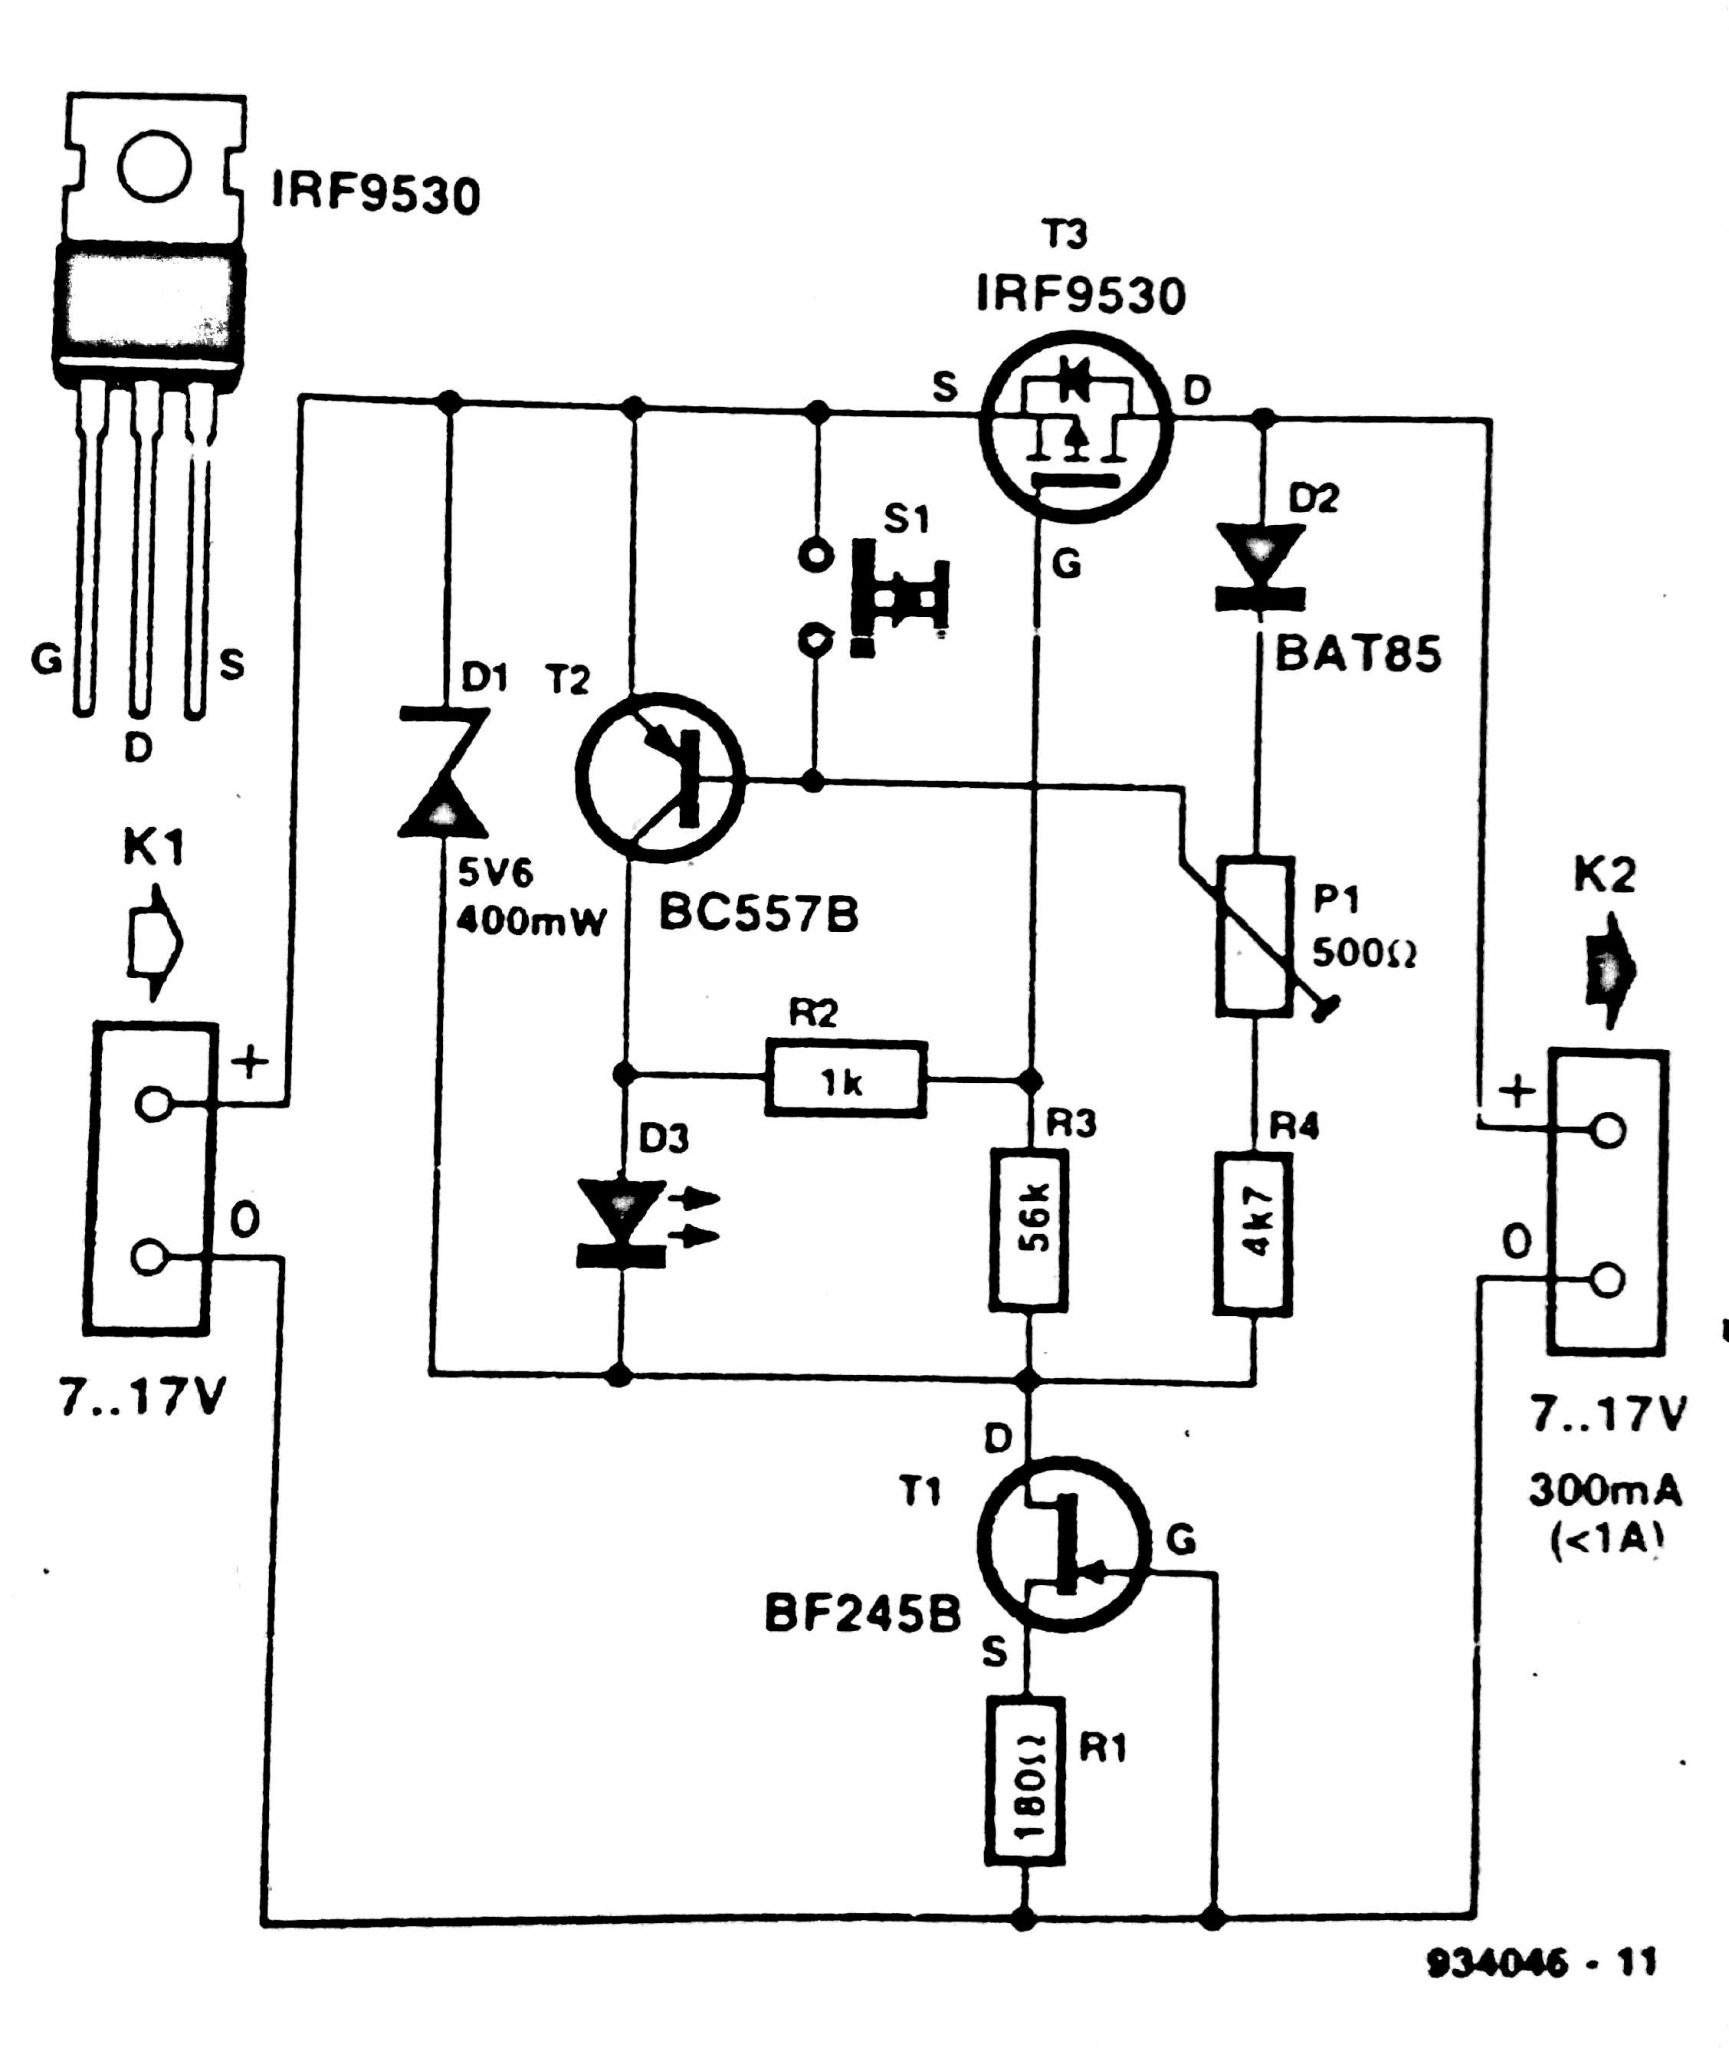 Diode Schematic And Wiring LED Schematic Wiring Diagram